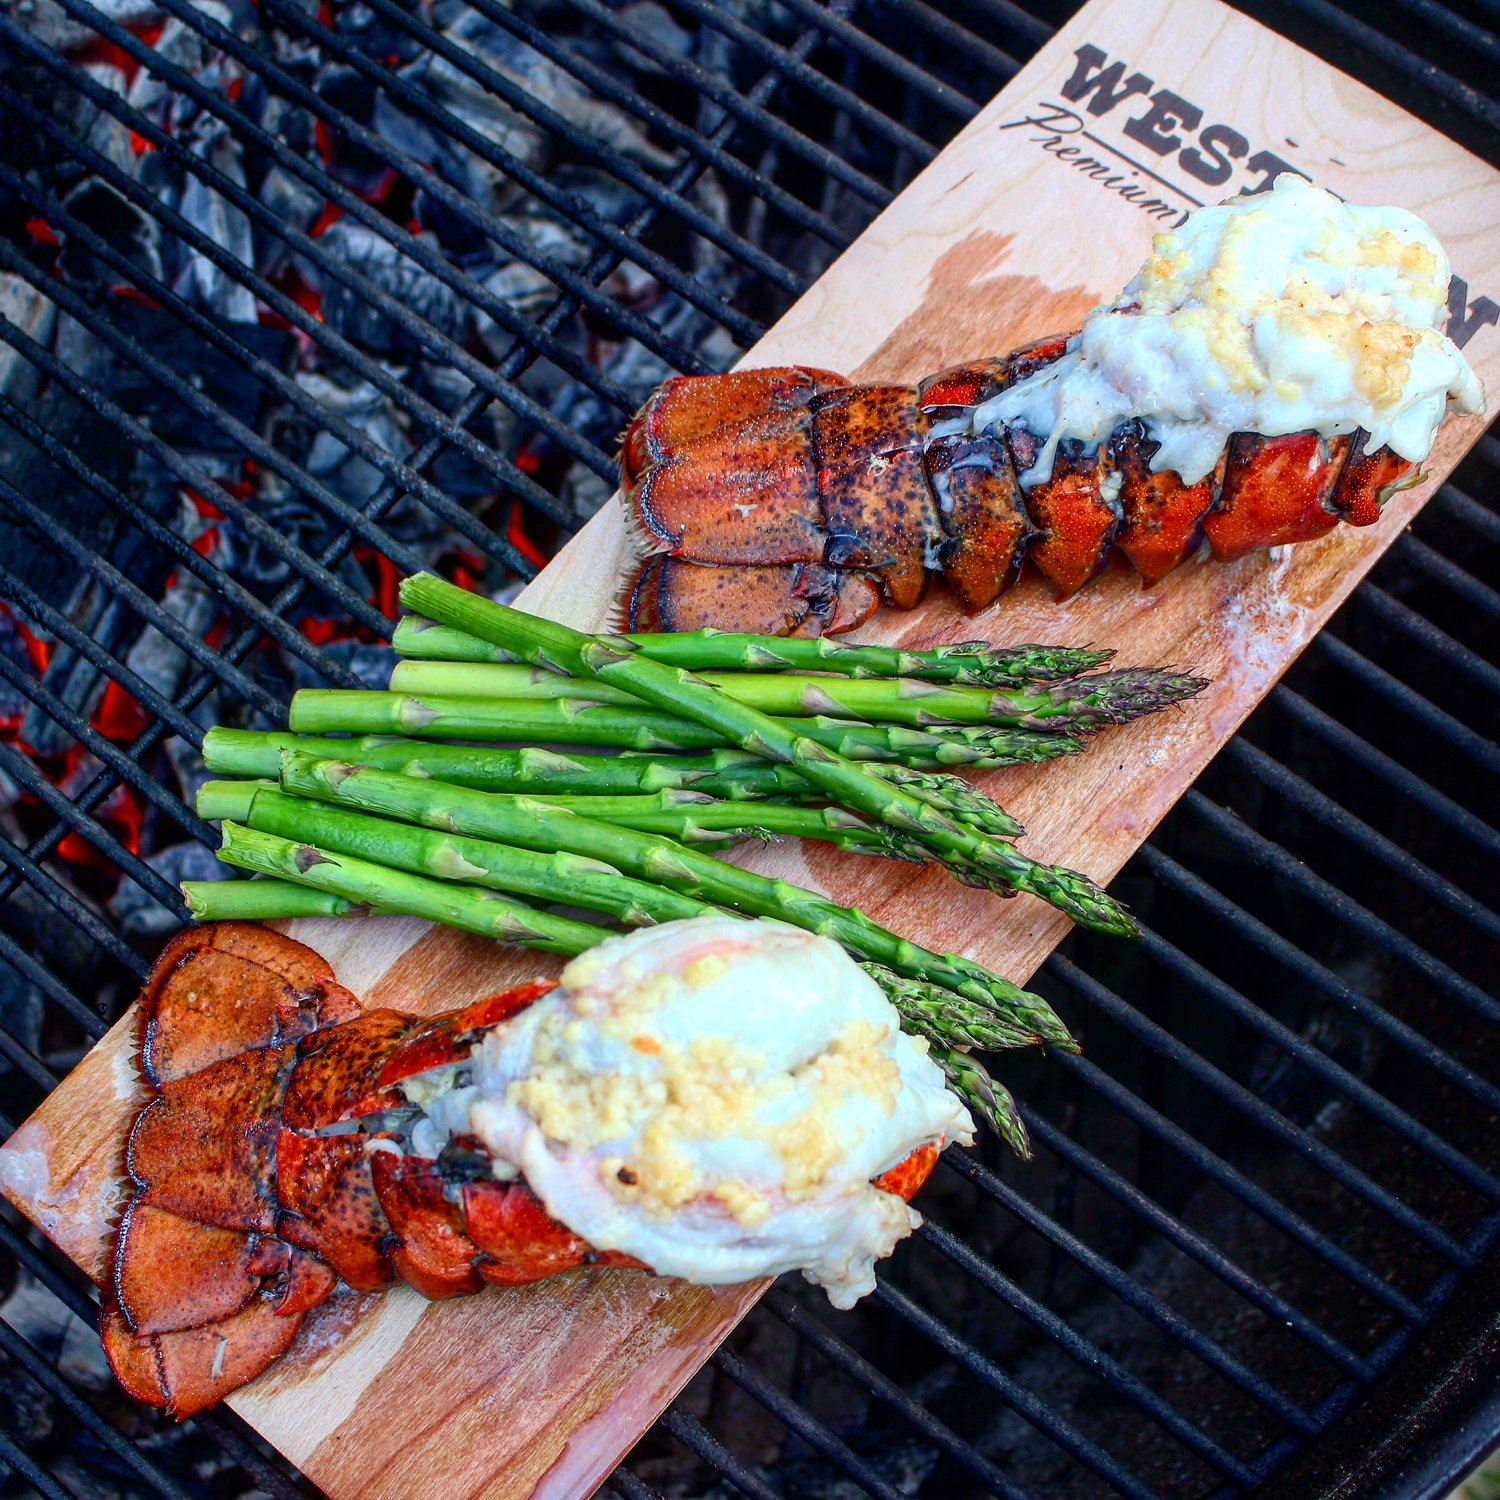 These Lobster Tails are BEAUTIFUL